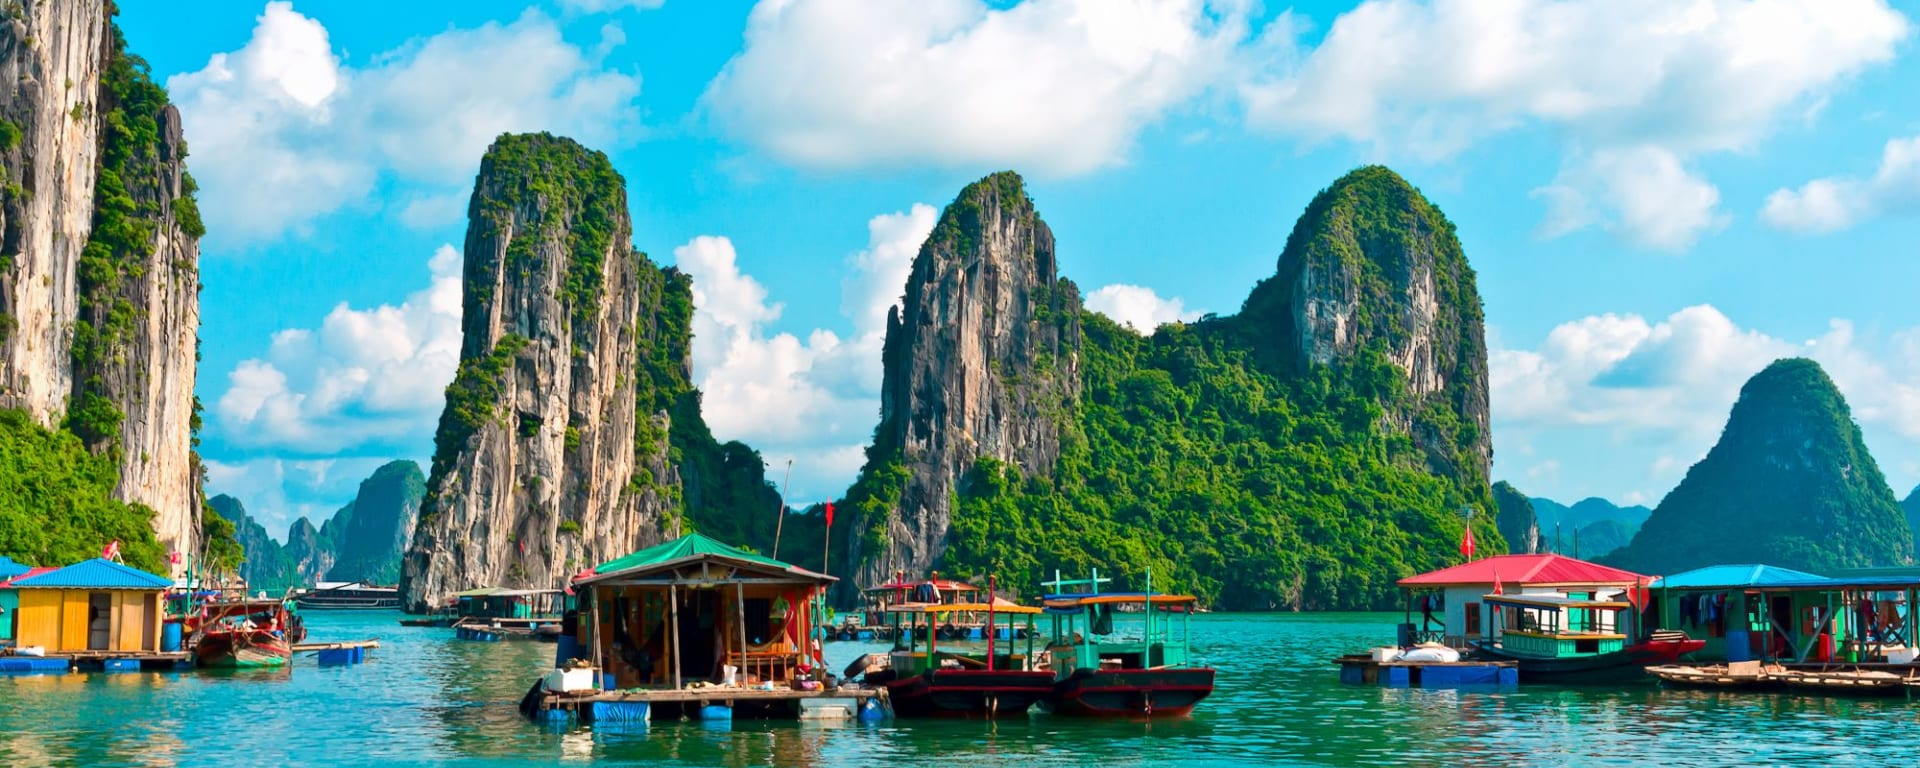 Halong Bucht Kreuzfahrten mit «Bhaya Premium» ab Hanoi: Halong Bay: Floating village and rock islands